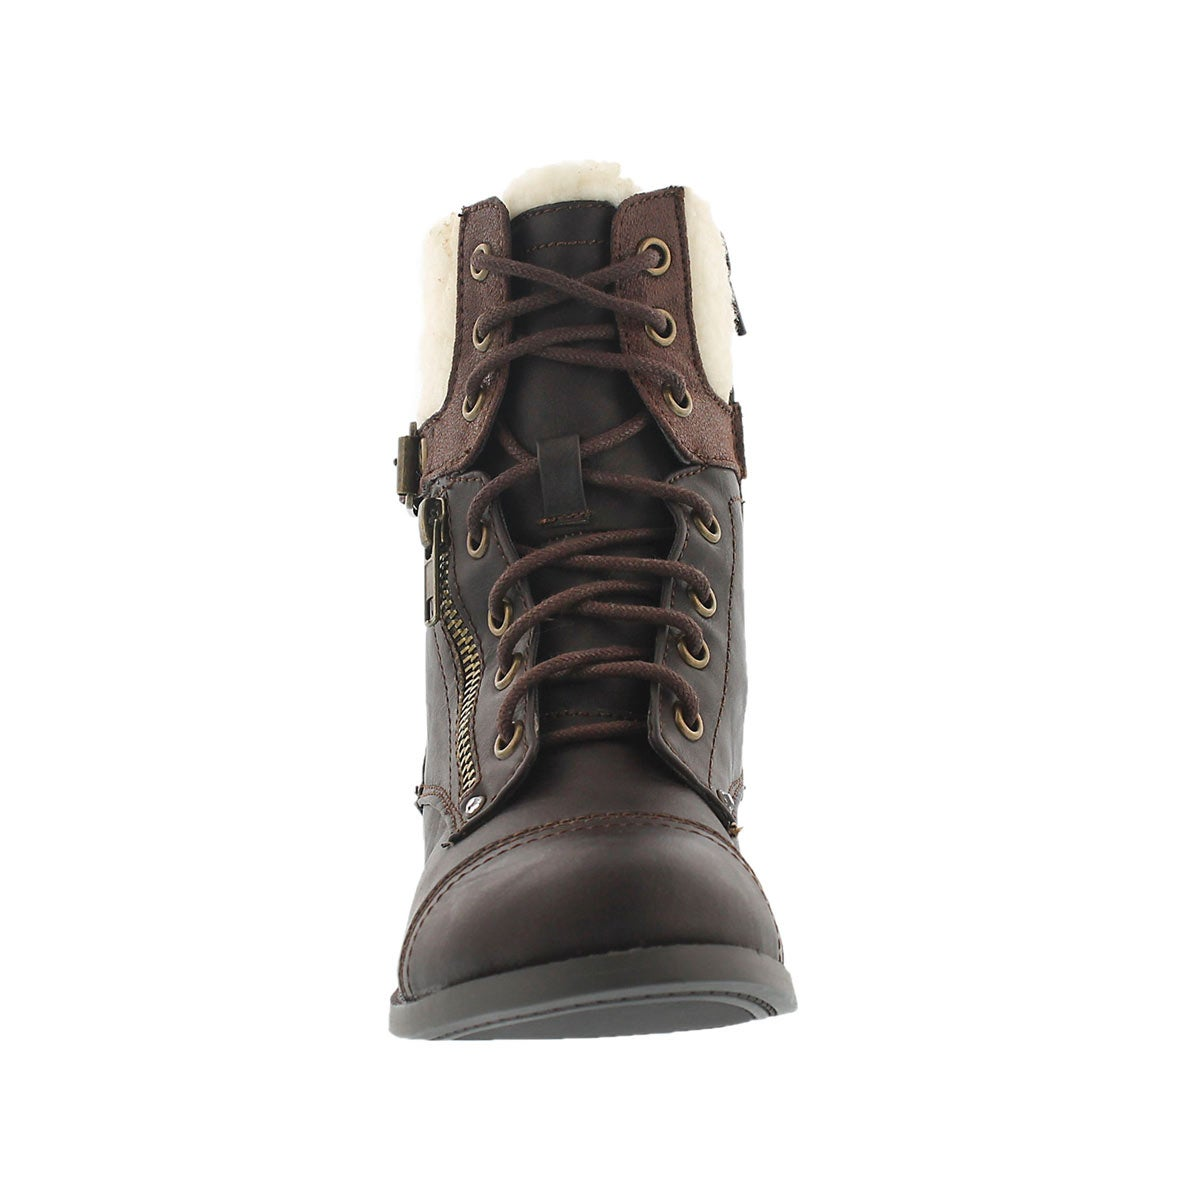 Grls Lori brown casual combat boot